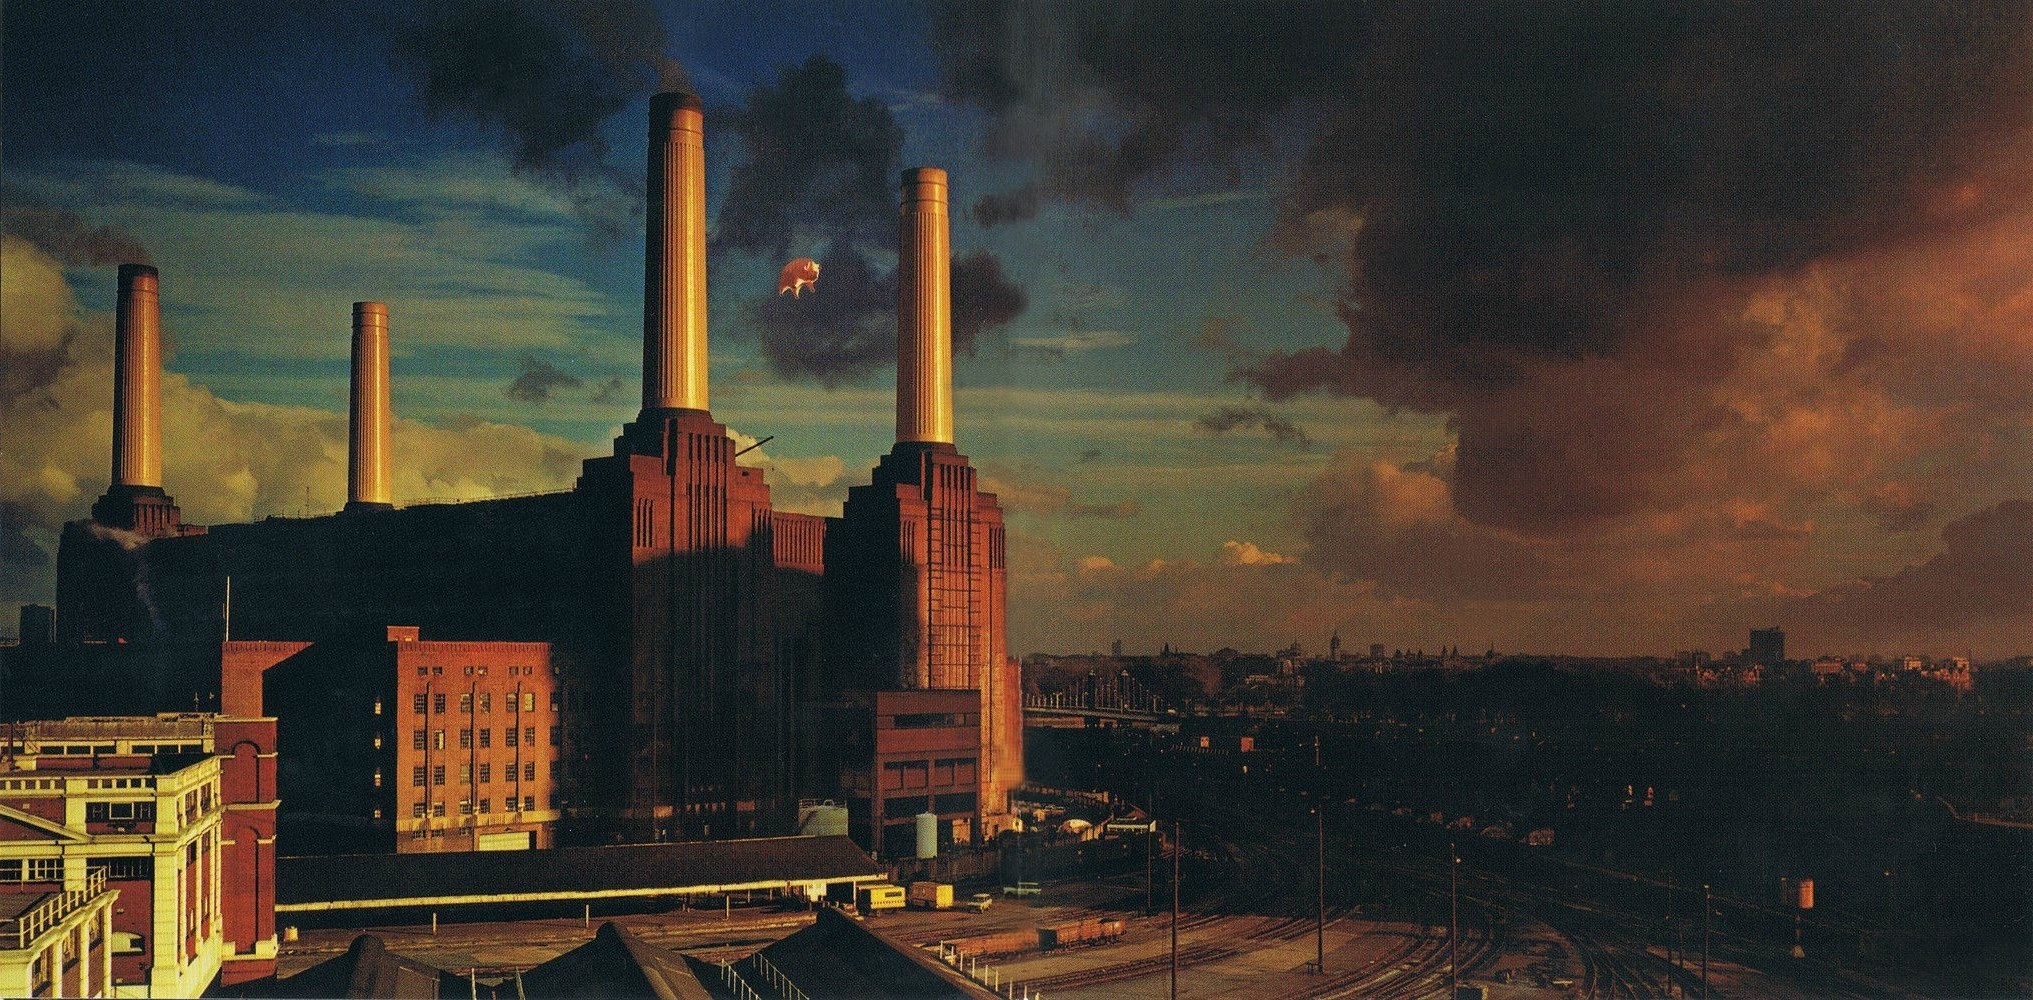 pink floyd, animals, london, pigs, album covers wallpapers hd